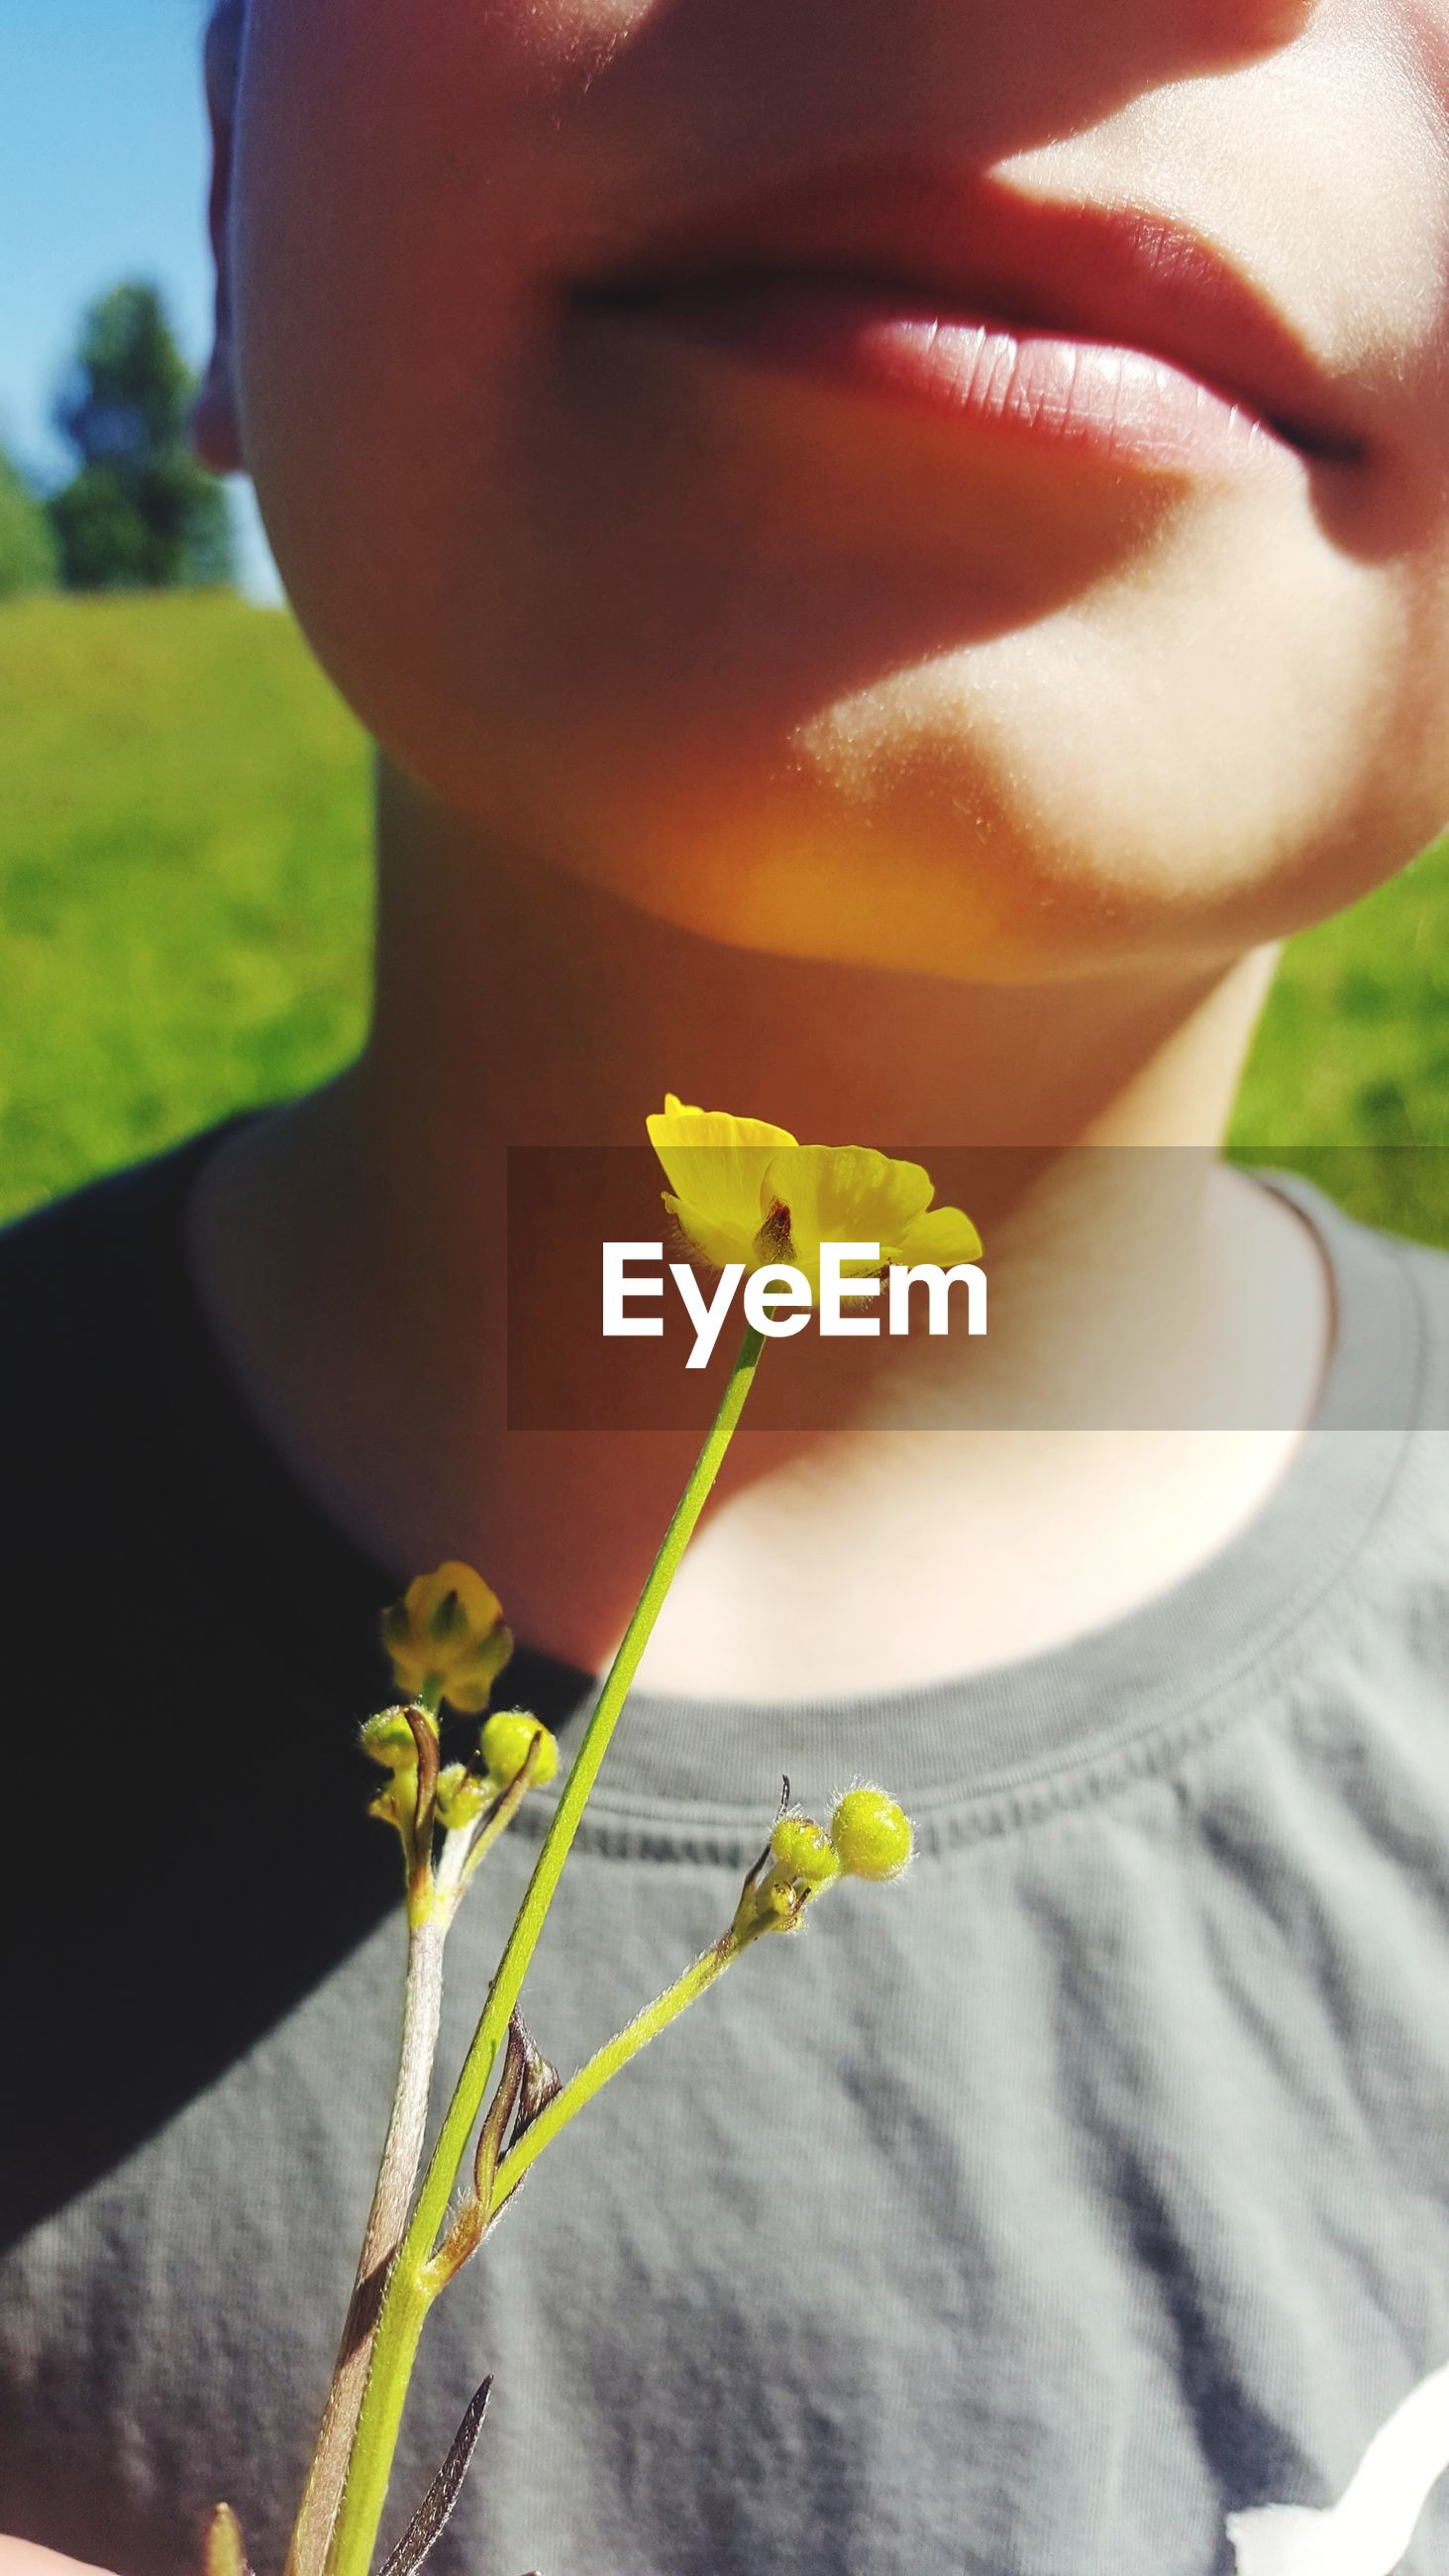 Midsection of boy with yellow flowers